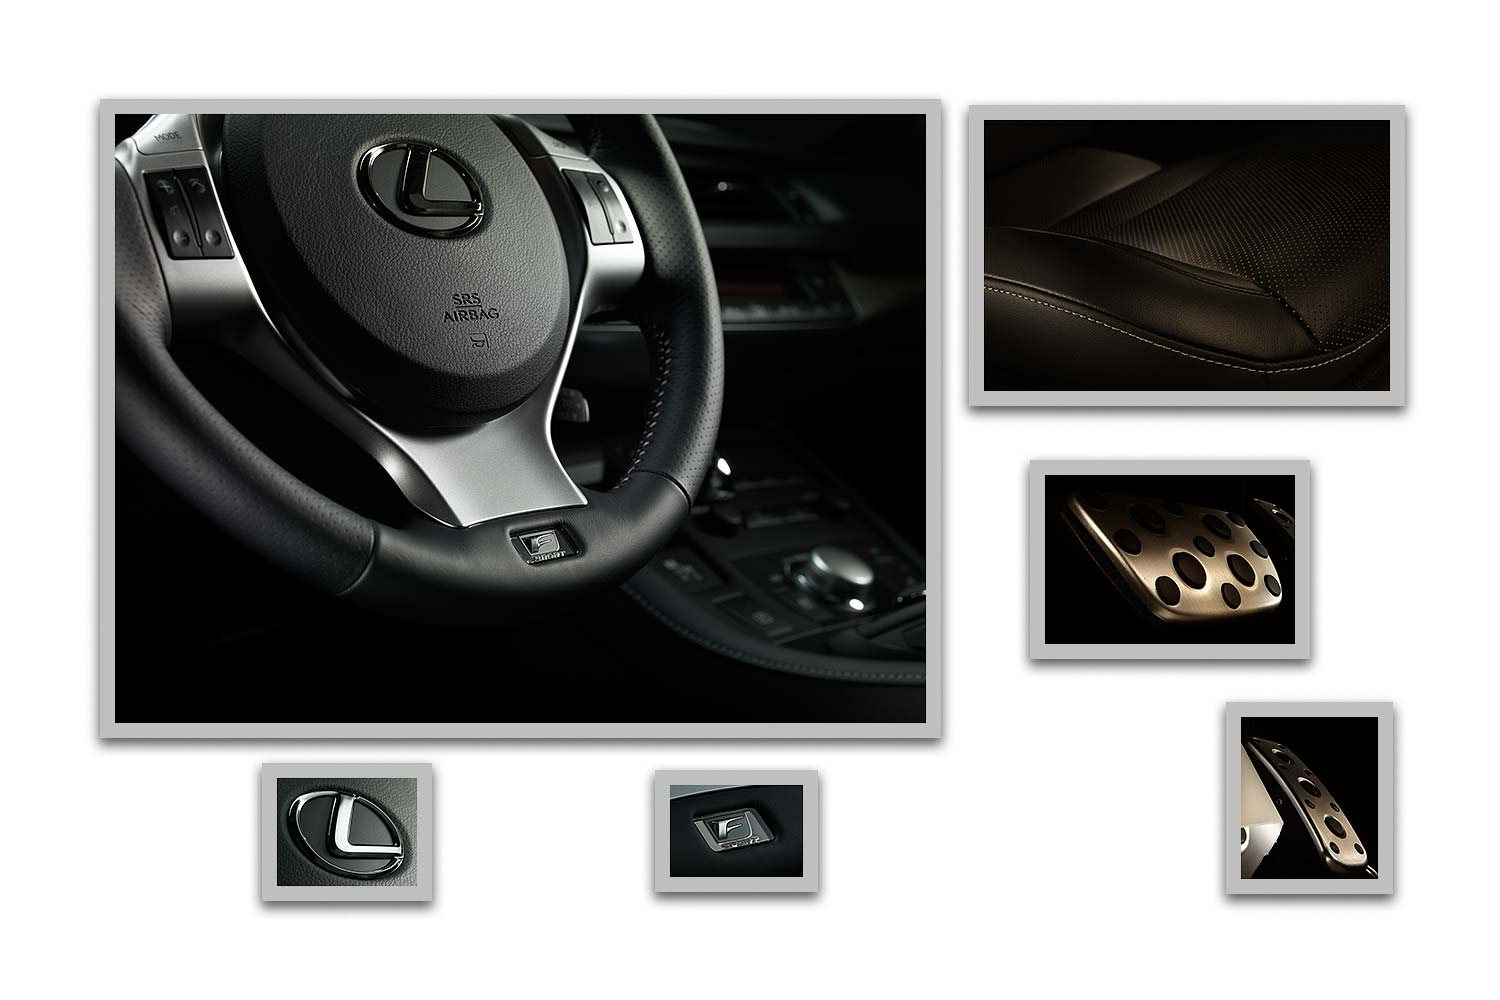 Lexus-Interiors-Originals.jpg